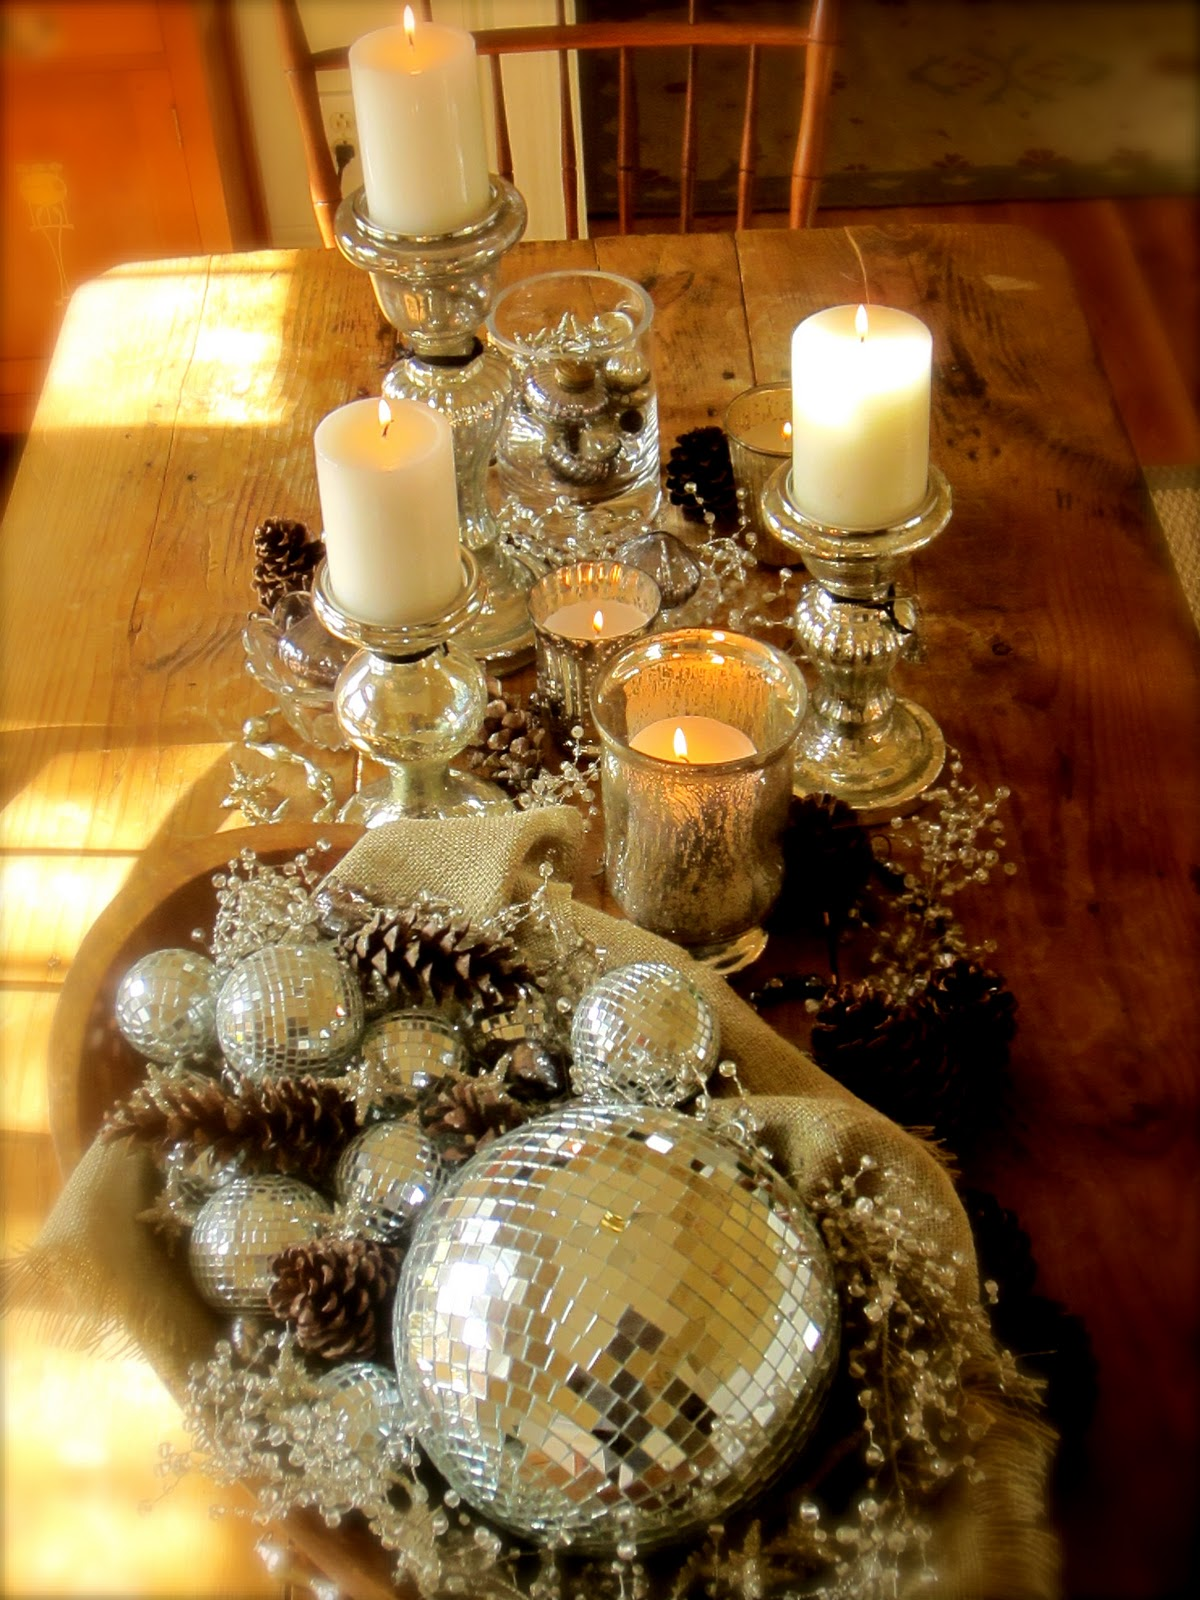 Linen and Burlap : More Christmas Decorating